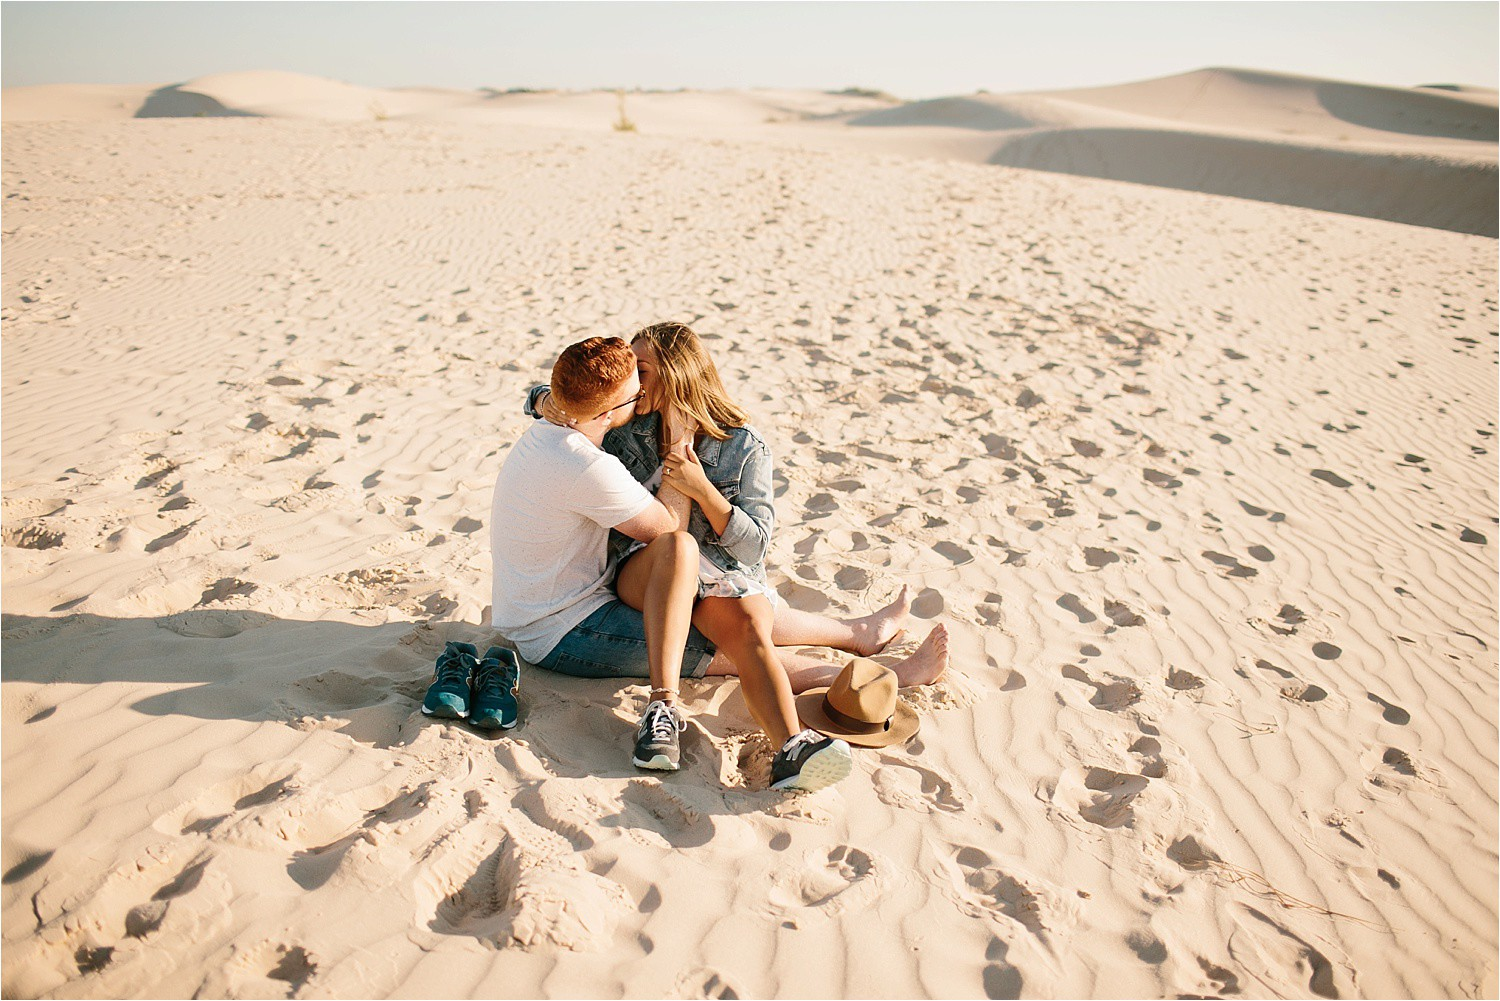 Lauren + Jacob __ a monahans sand dunes engagement session at sunrise by North Texas Wedding Photographer, Rachel Meagan Photography __ 36